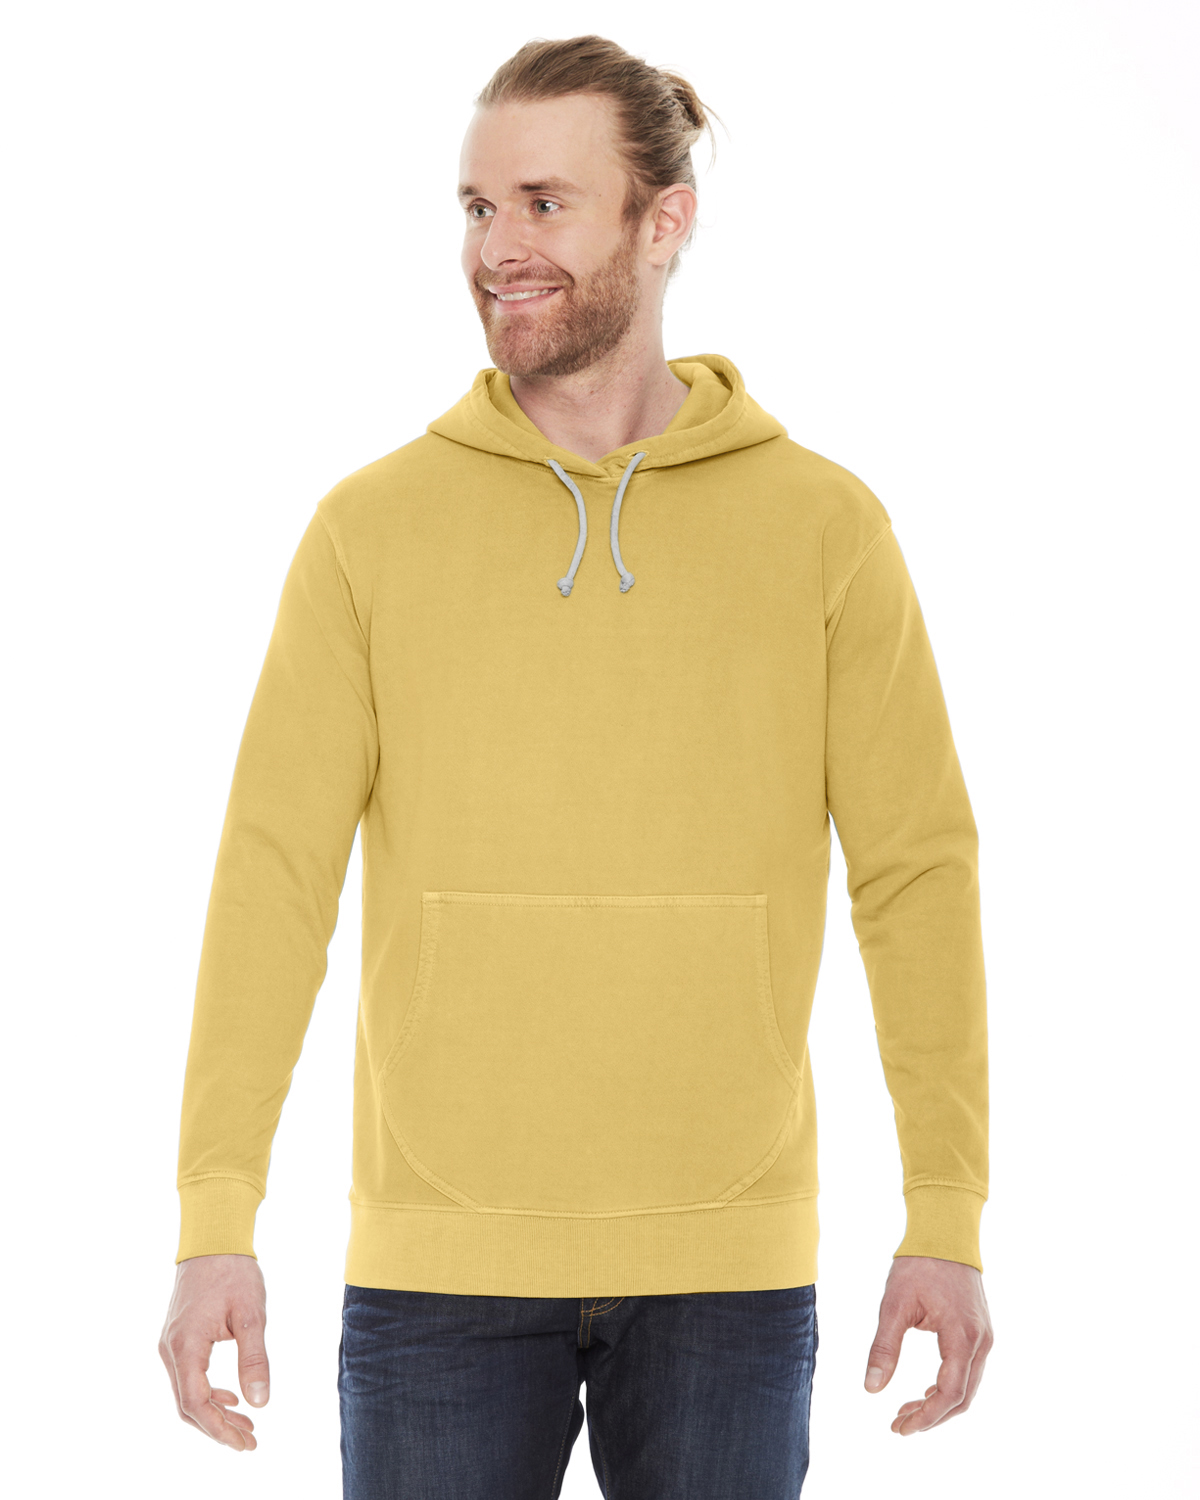 Authentic Pigment Unisex French Terry Hoodie